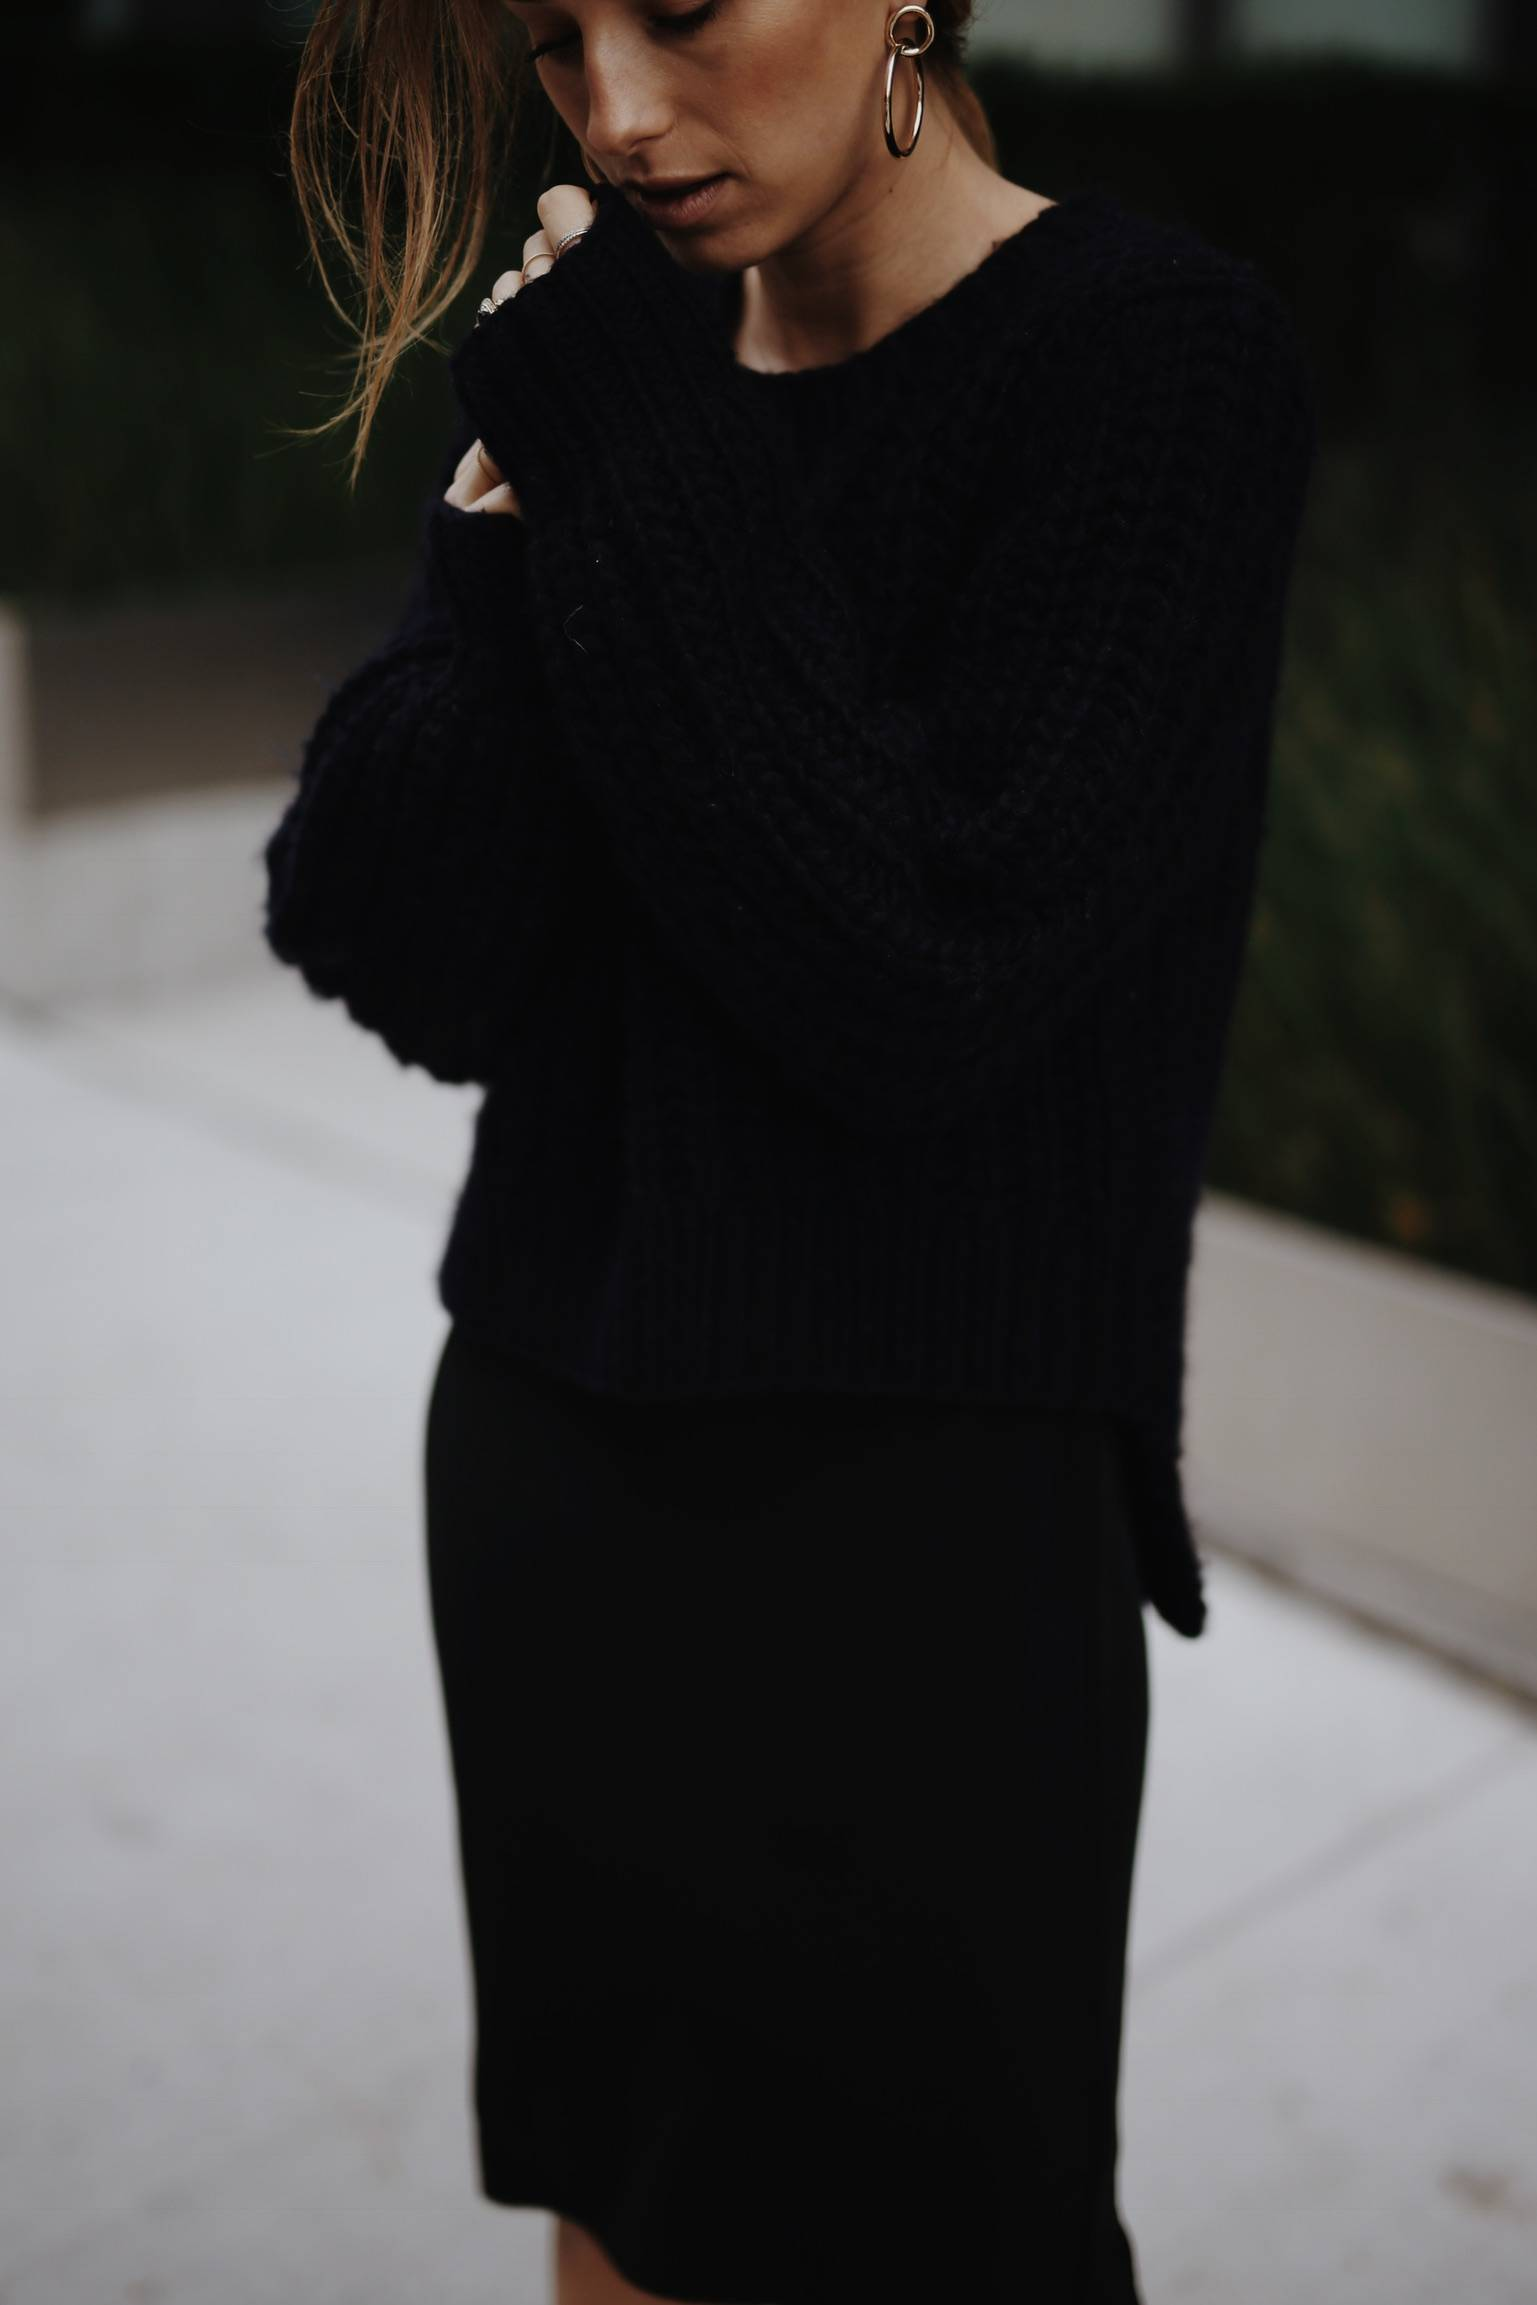 Style and beauty blogger Jill Lansky of The August Diaries shows how to wear black and navy together in a black slip dress and navy knit